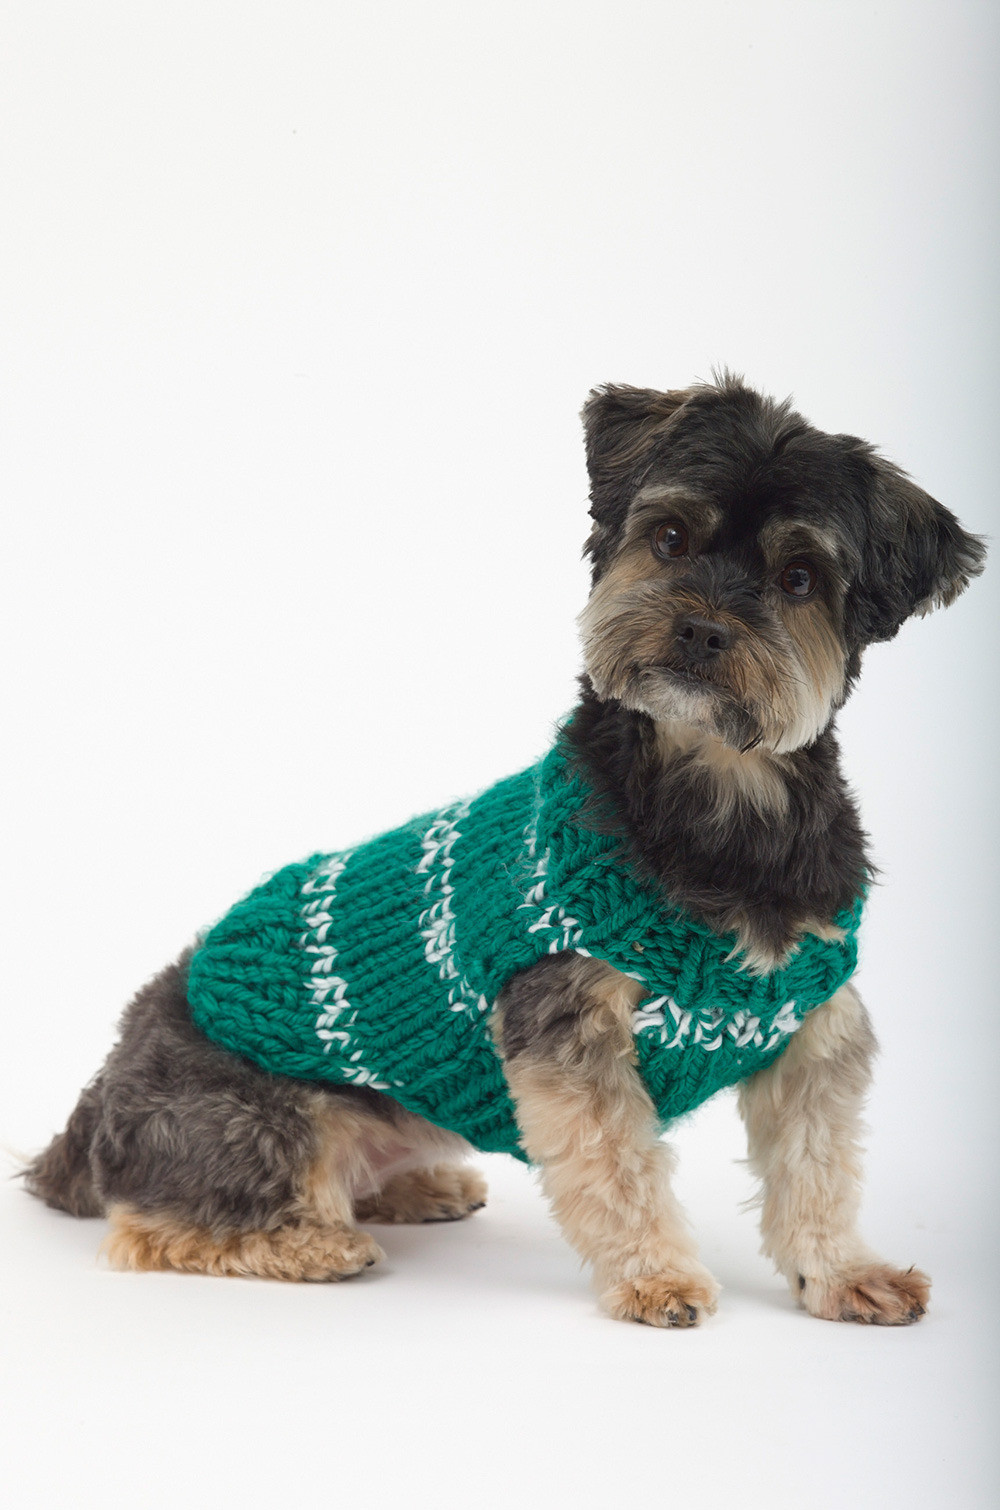 Free Dog Sweater Patterns New top 5 Free Dog Sweater Knitting Patterns Of Innovative 47 Models Free Dog Sweater Patterns